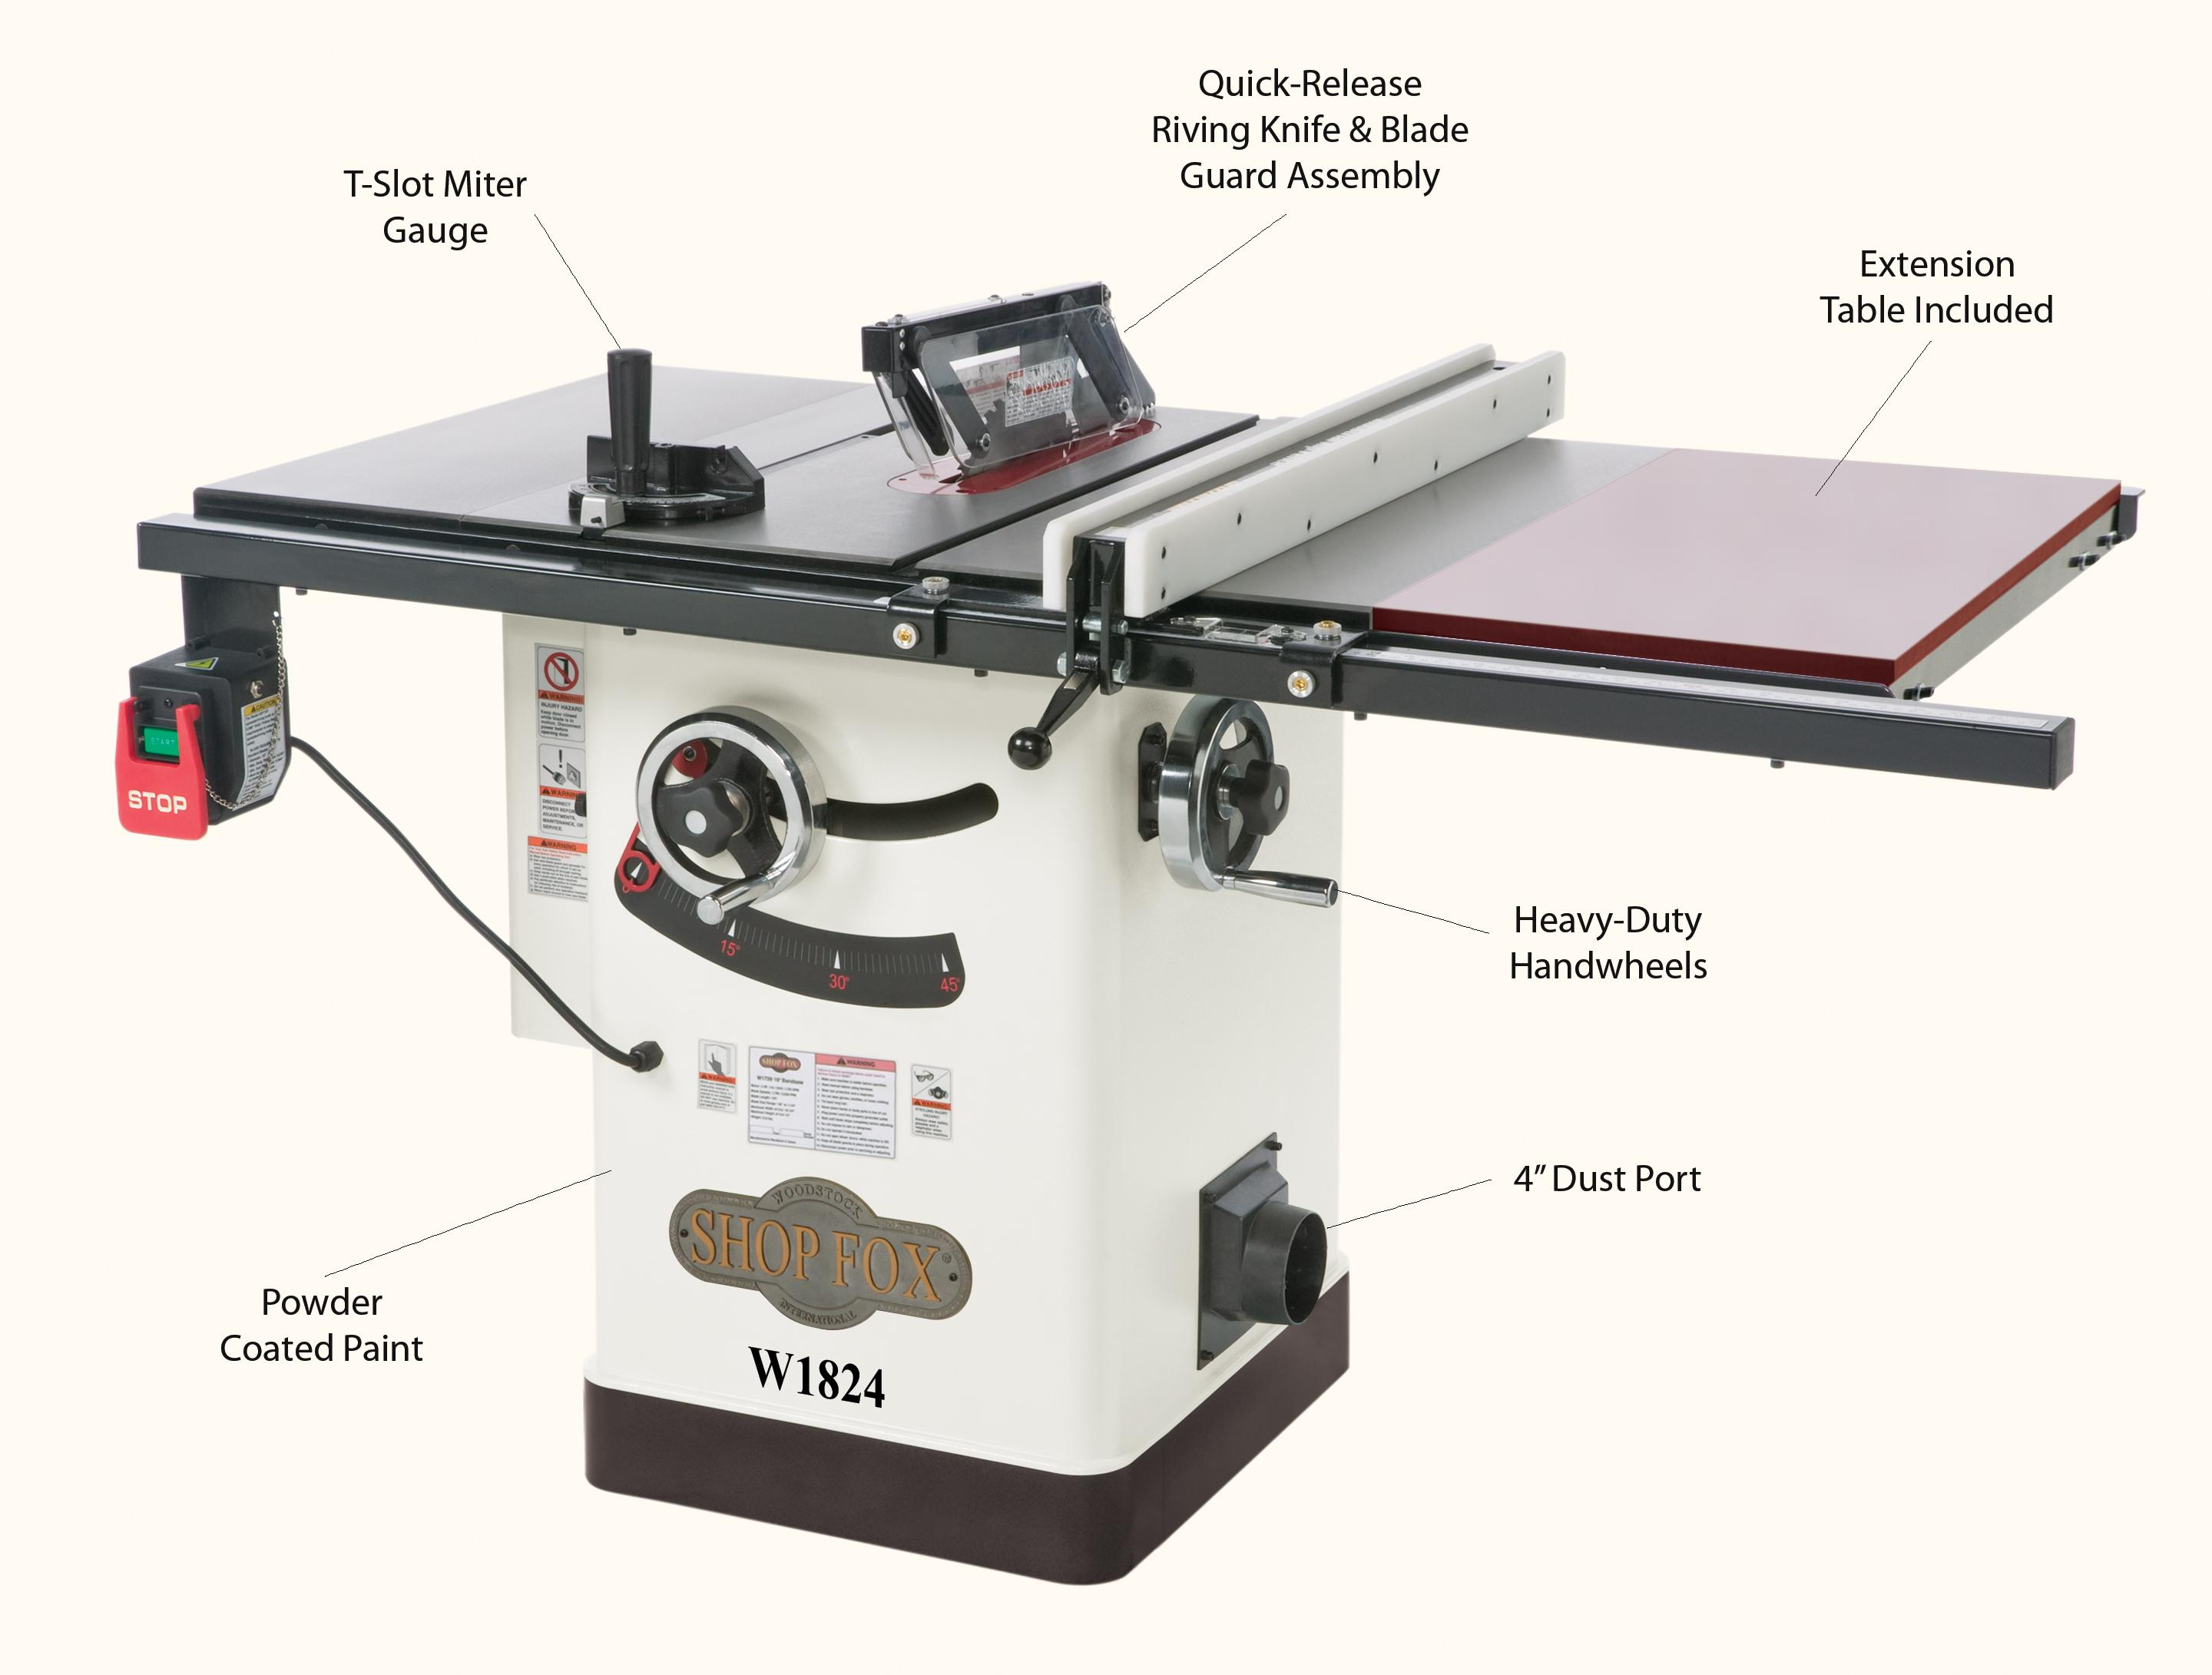 Shop fox w1824 hybrid table saw with extension table power table view larger greentooth Choice Image